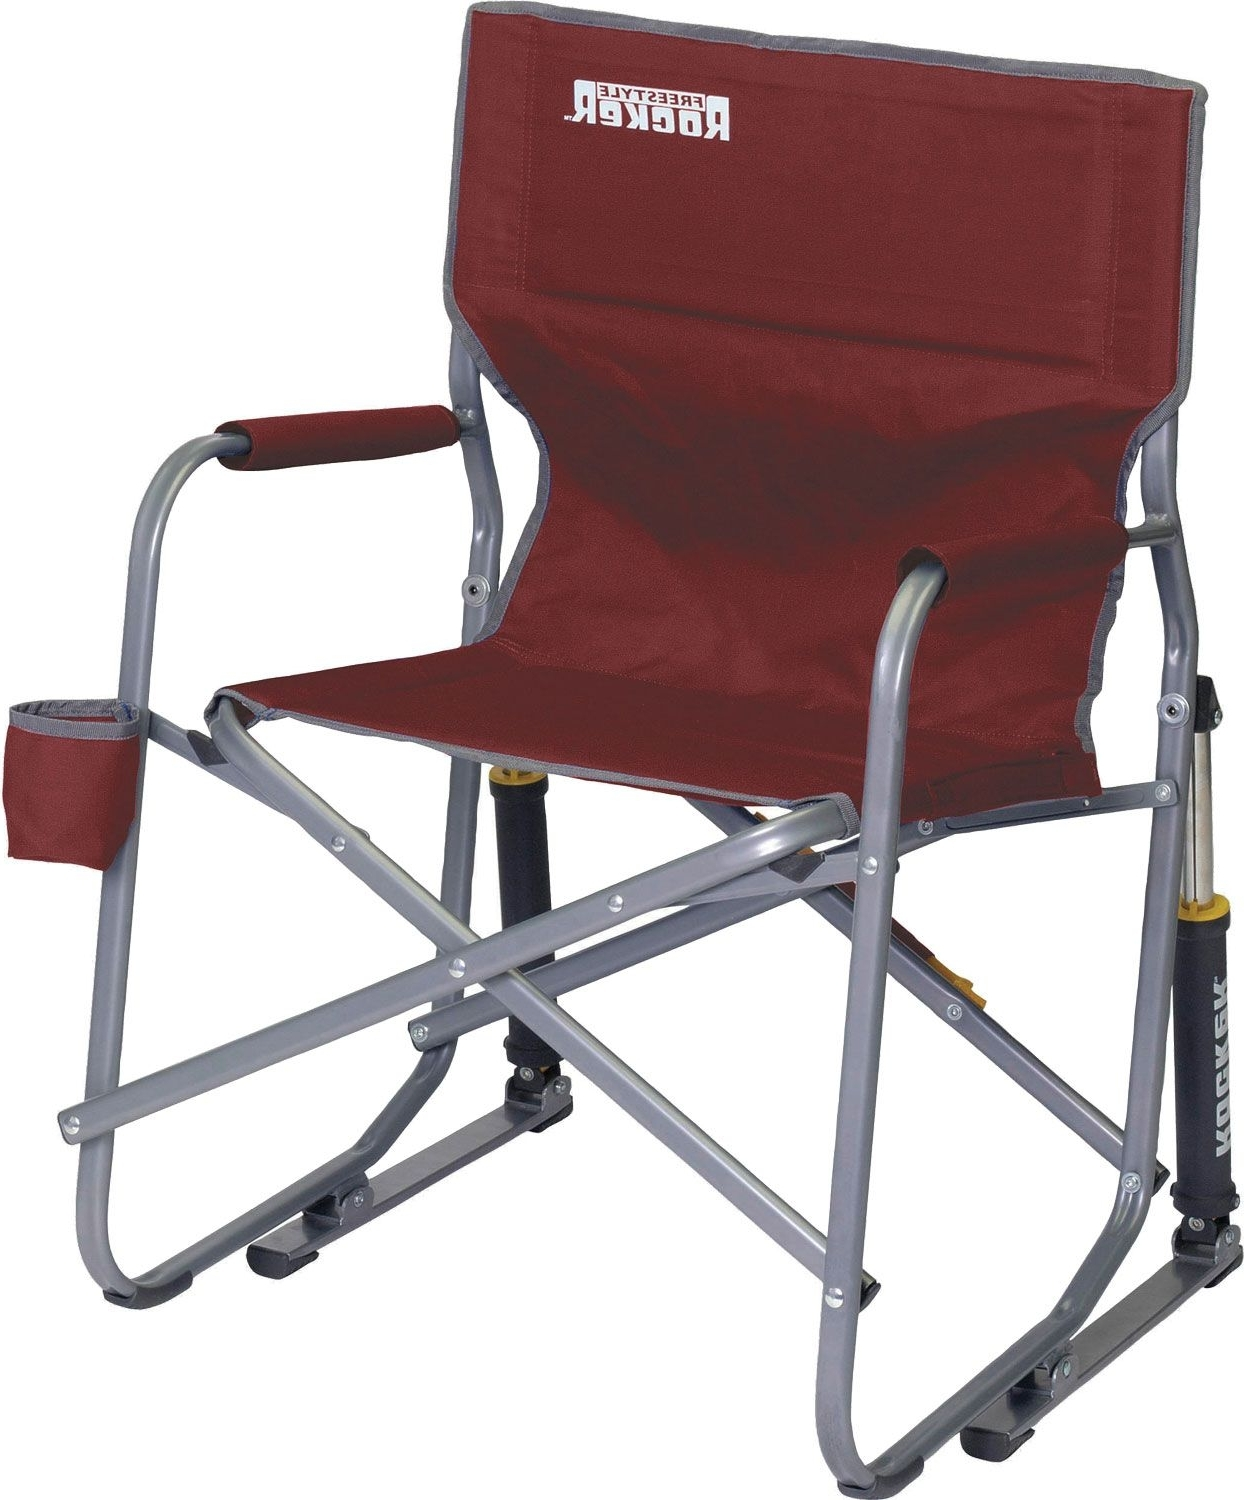 Folding Rocking Chairs Within Well Known Gci Outdoor Freestyle Rocker Chair Sporting Goods Cinnamon Folding (View 7 of 15)